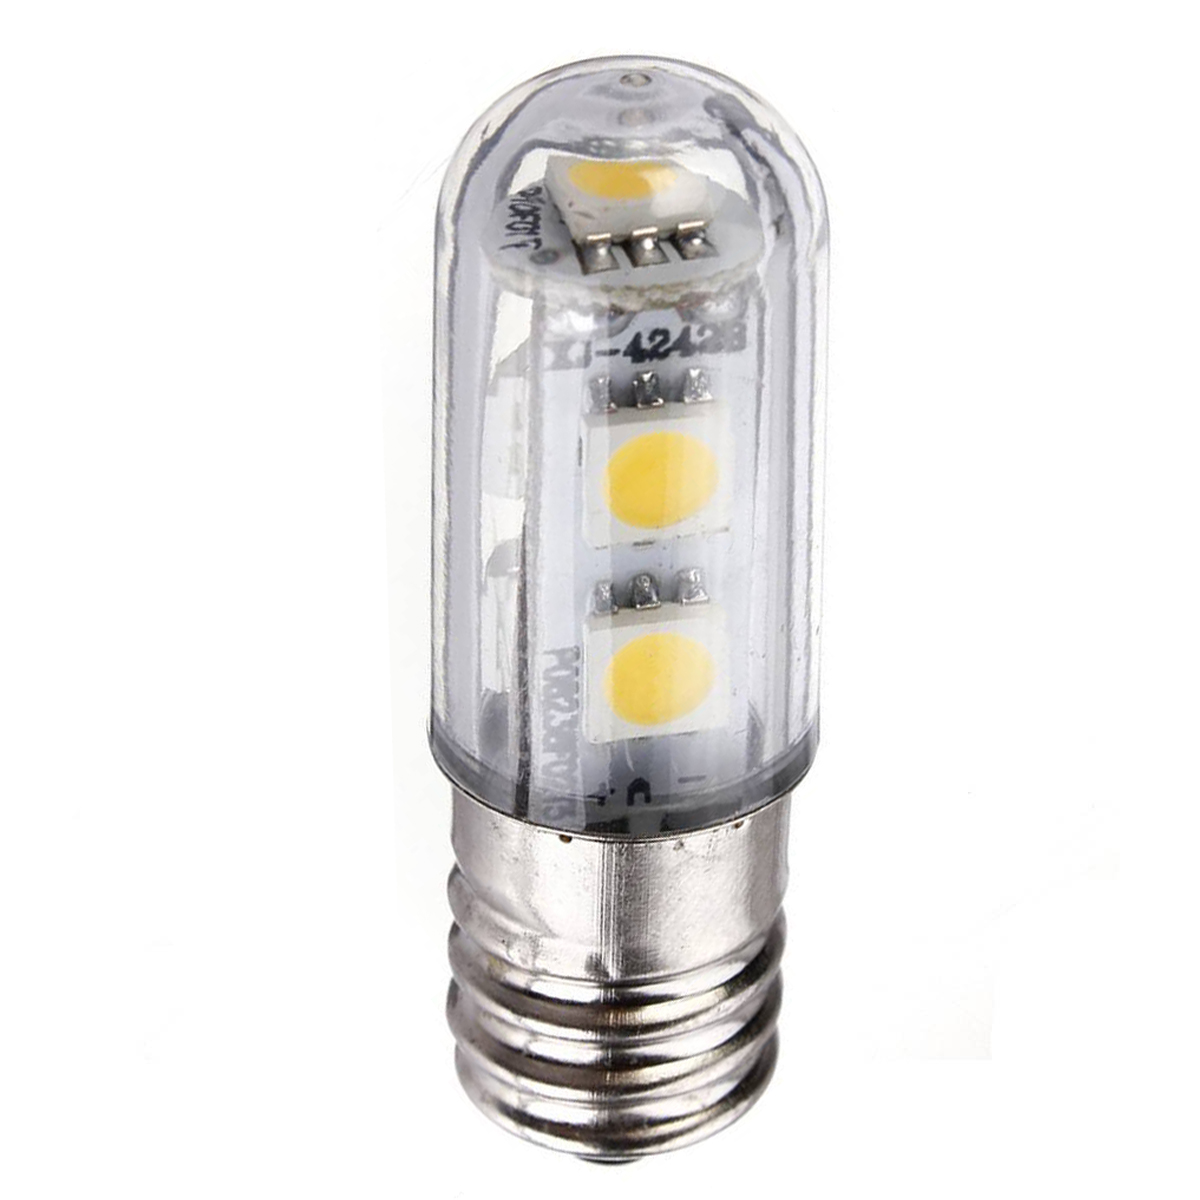 8 Pack E14 1W Led Refrigerator Bulbs 7 Smd 5050 Warm White Colour 15w Replacement for Halogen bulb 3000K 45LM Energy Saving 220V carprie super drop ship new 2 x canbus error free white t10 5 smd 5050 w5w 194 16 interior led bulbs mar713